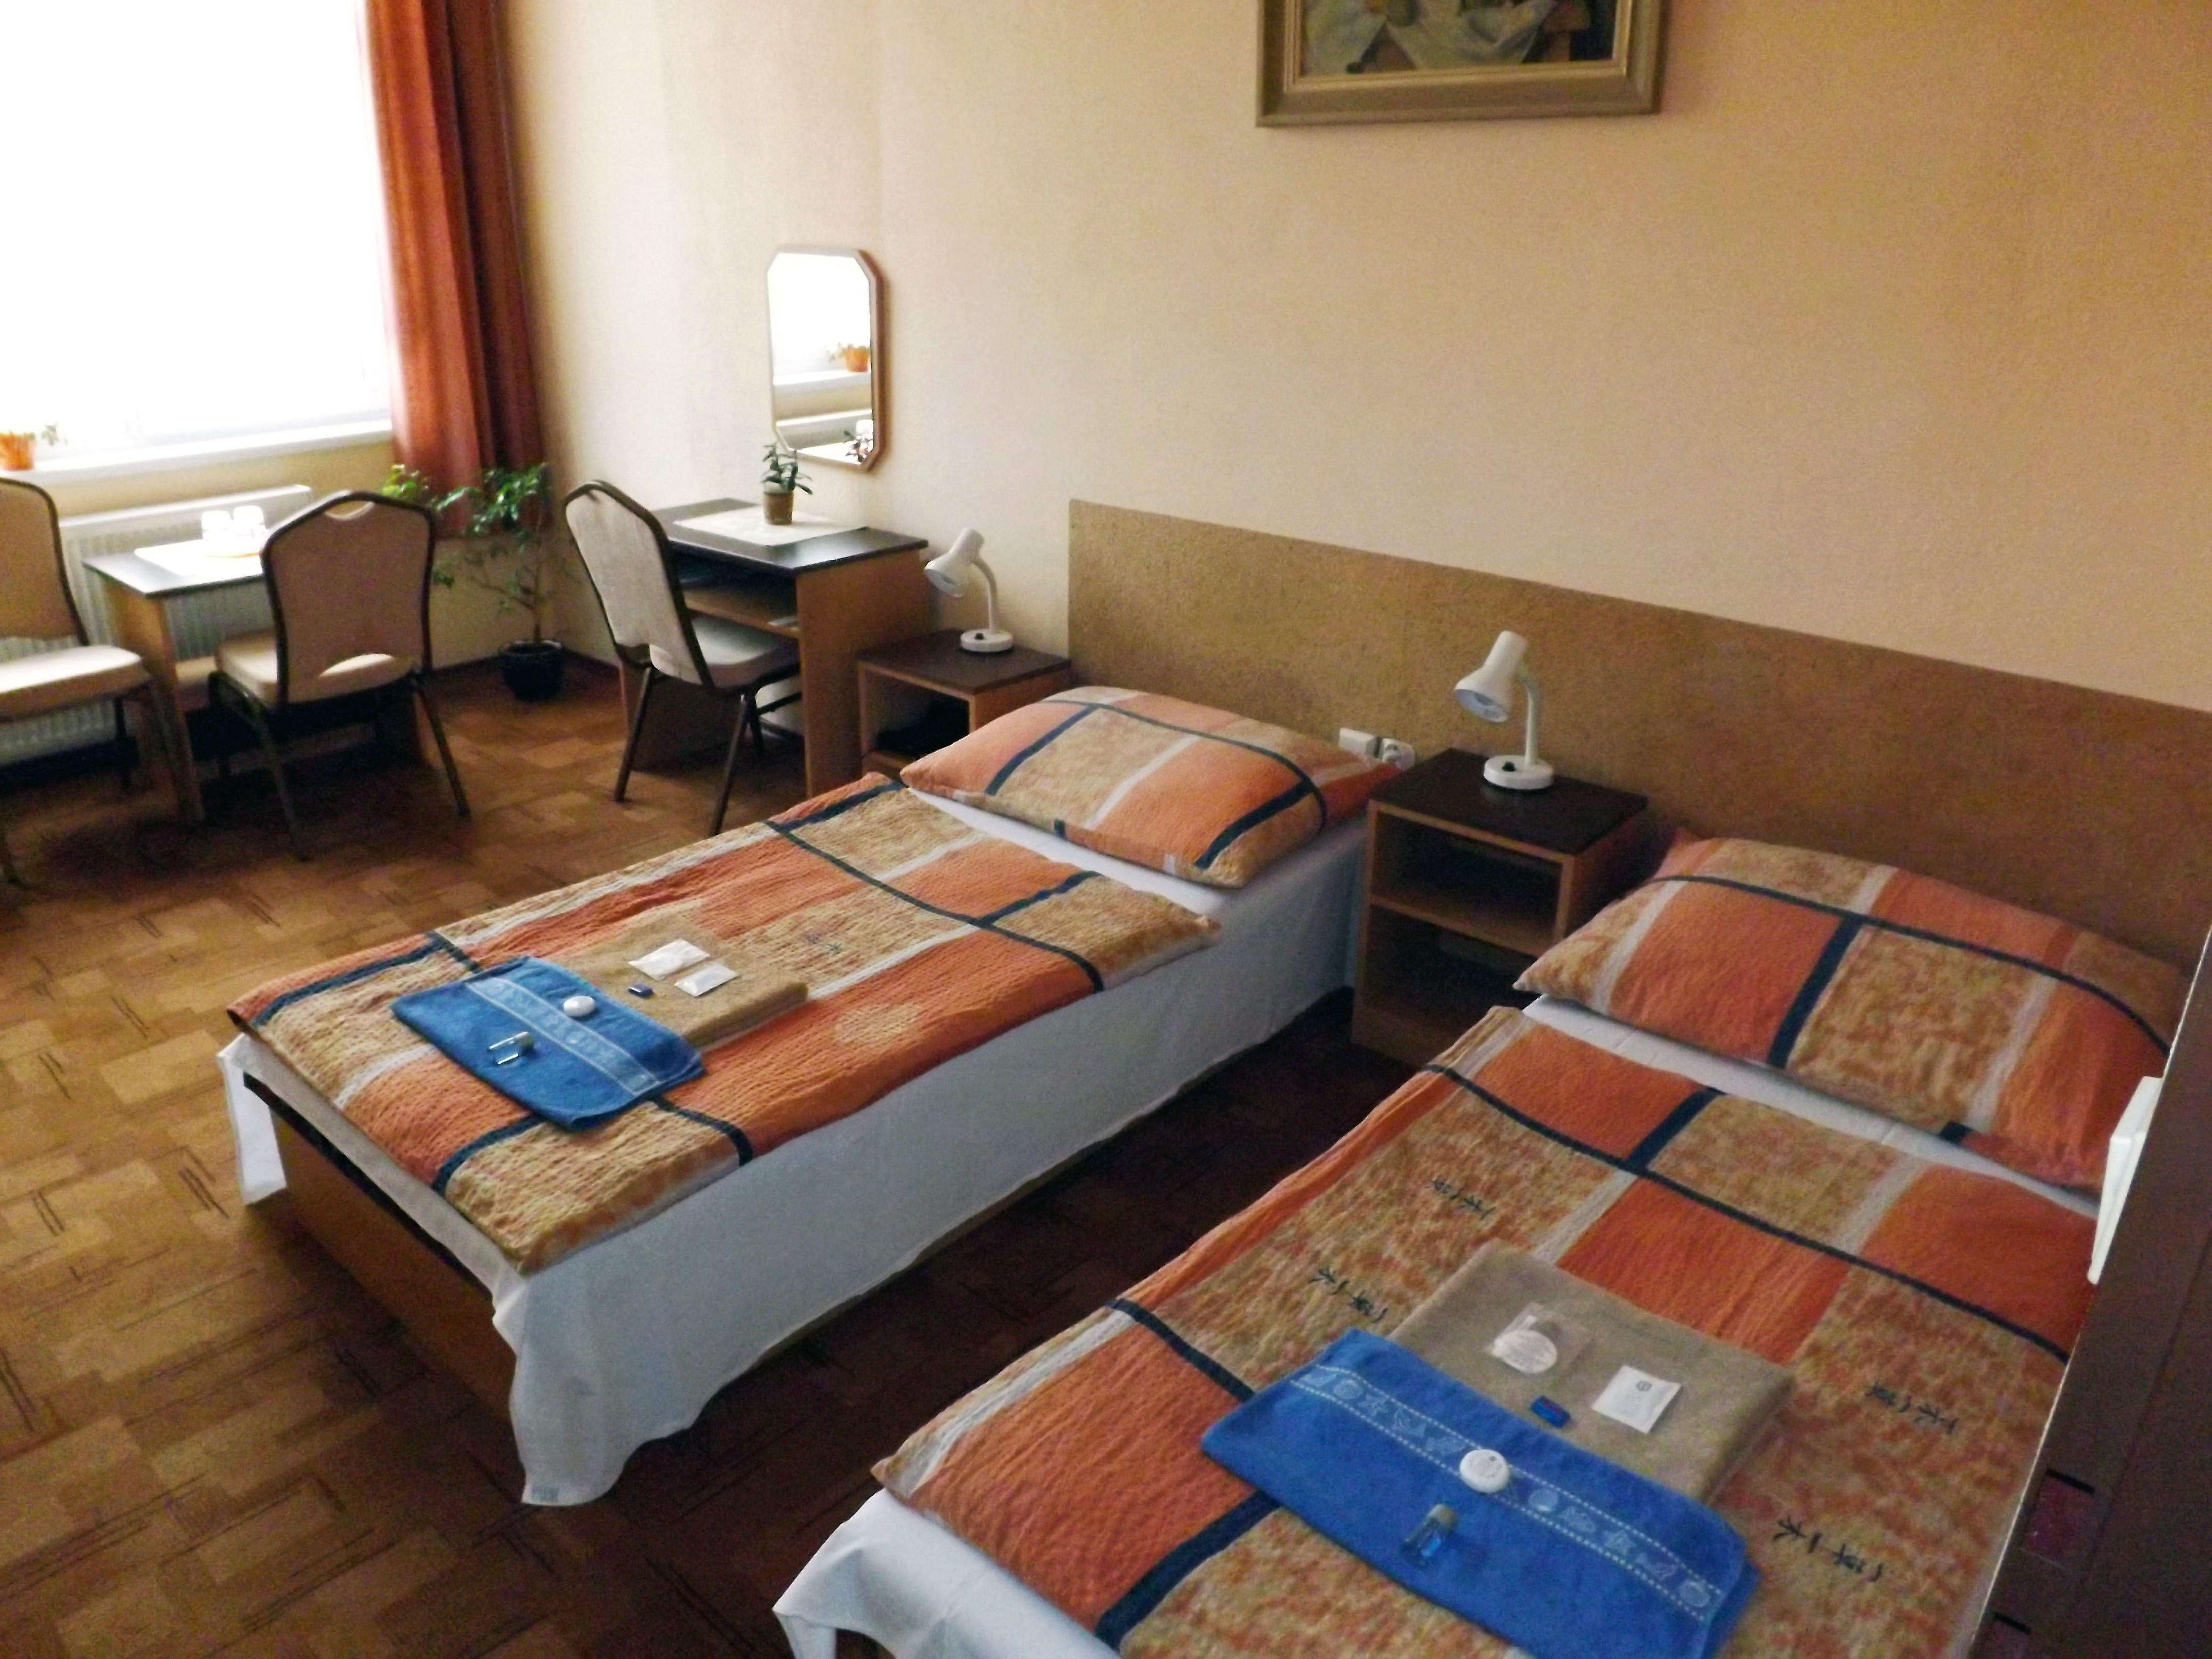 ... Room in hotel Avion in Prostějov ...